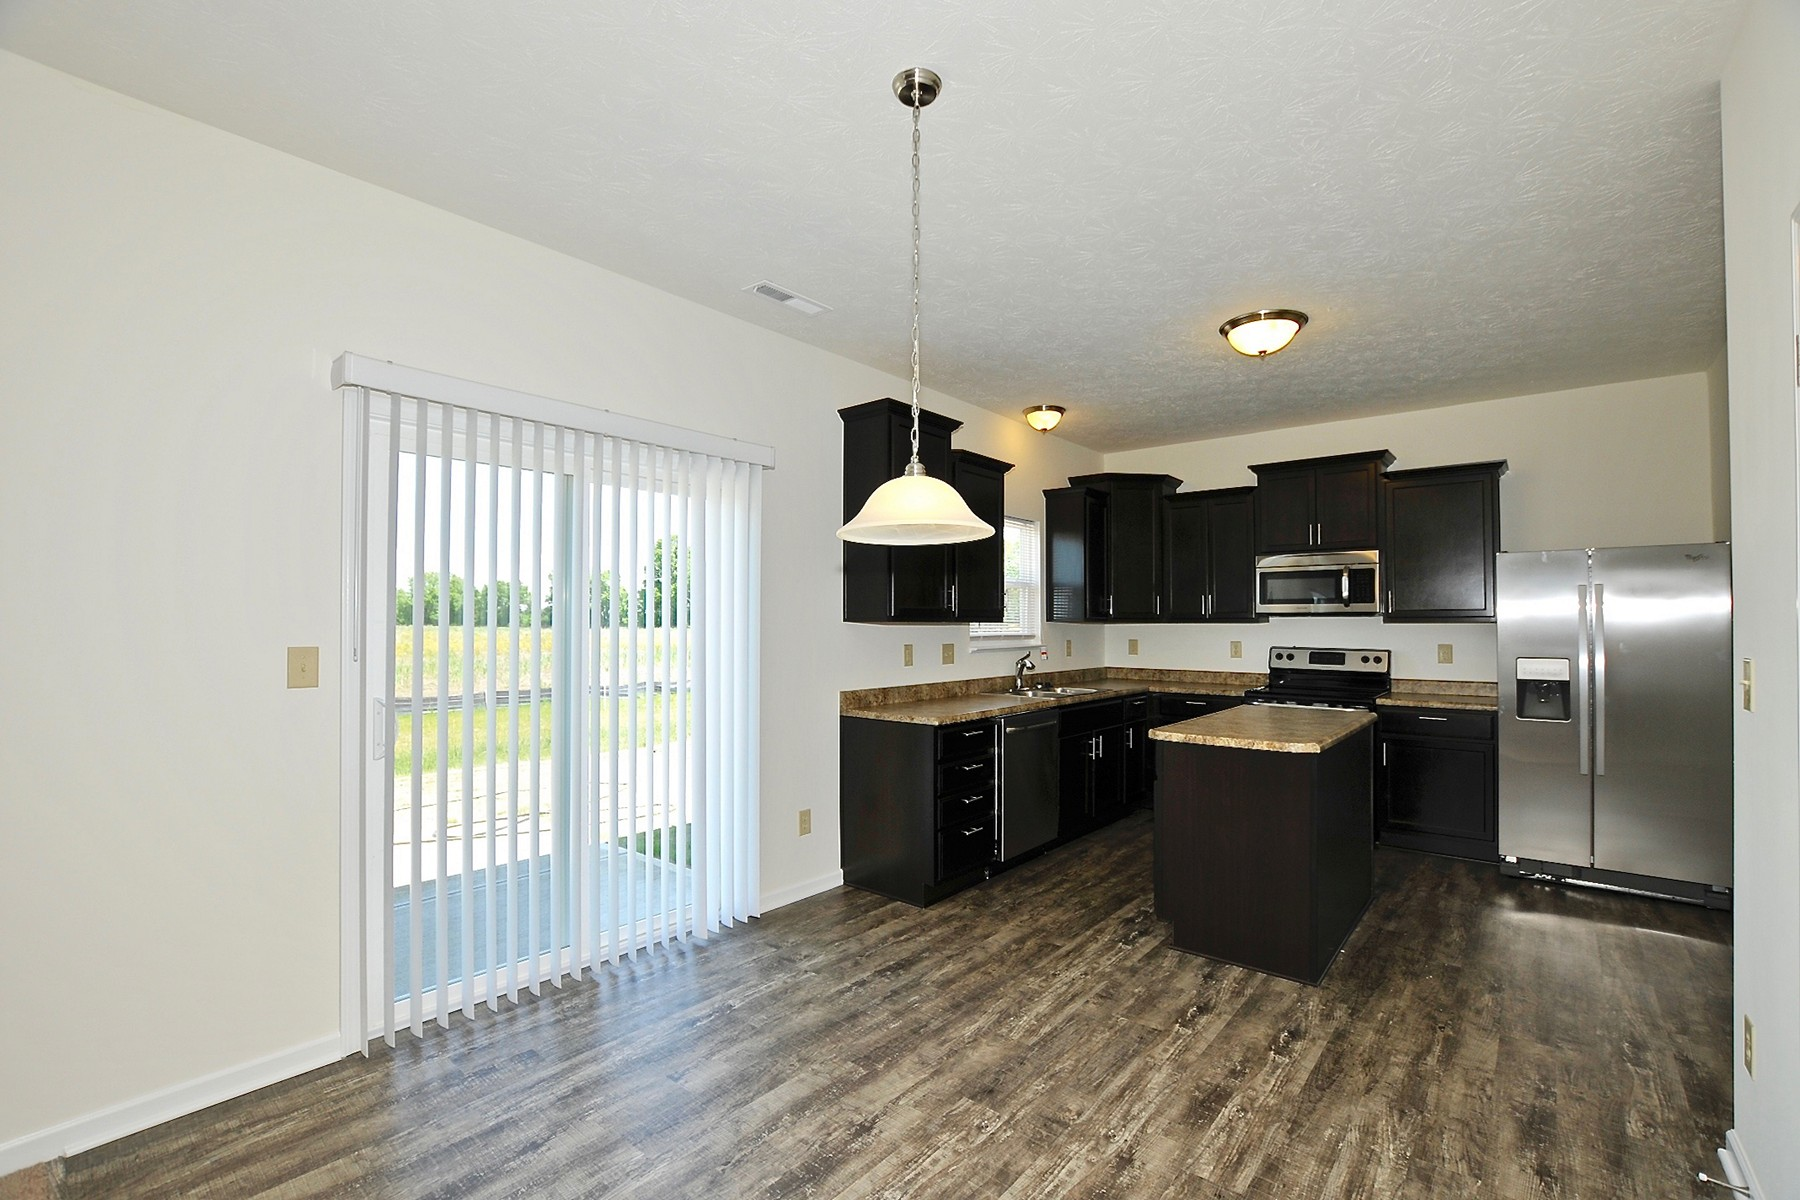 Additional photo for property listing at Brand New Home for Lease 856 Adena Lane Westfield, Indiana 46074 Estados Unidos